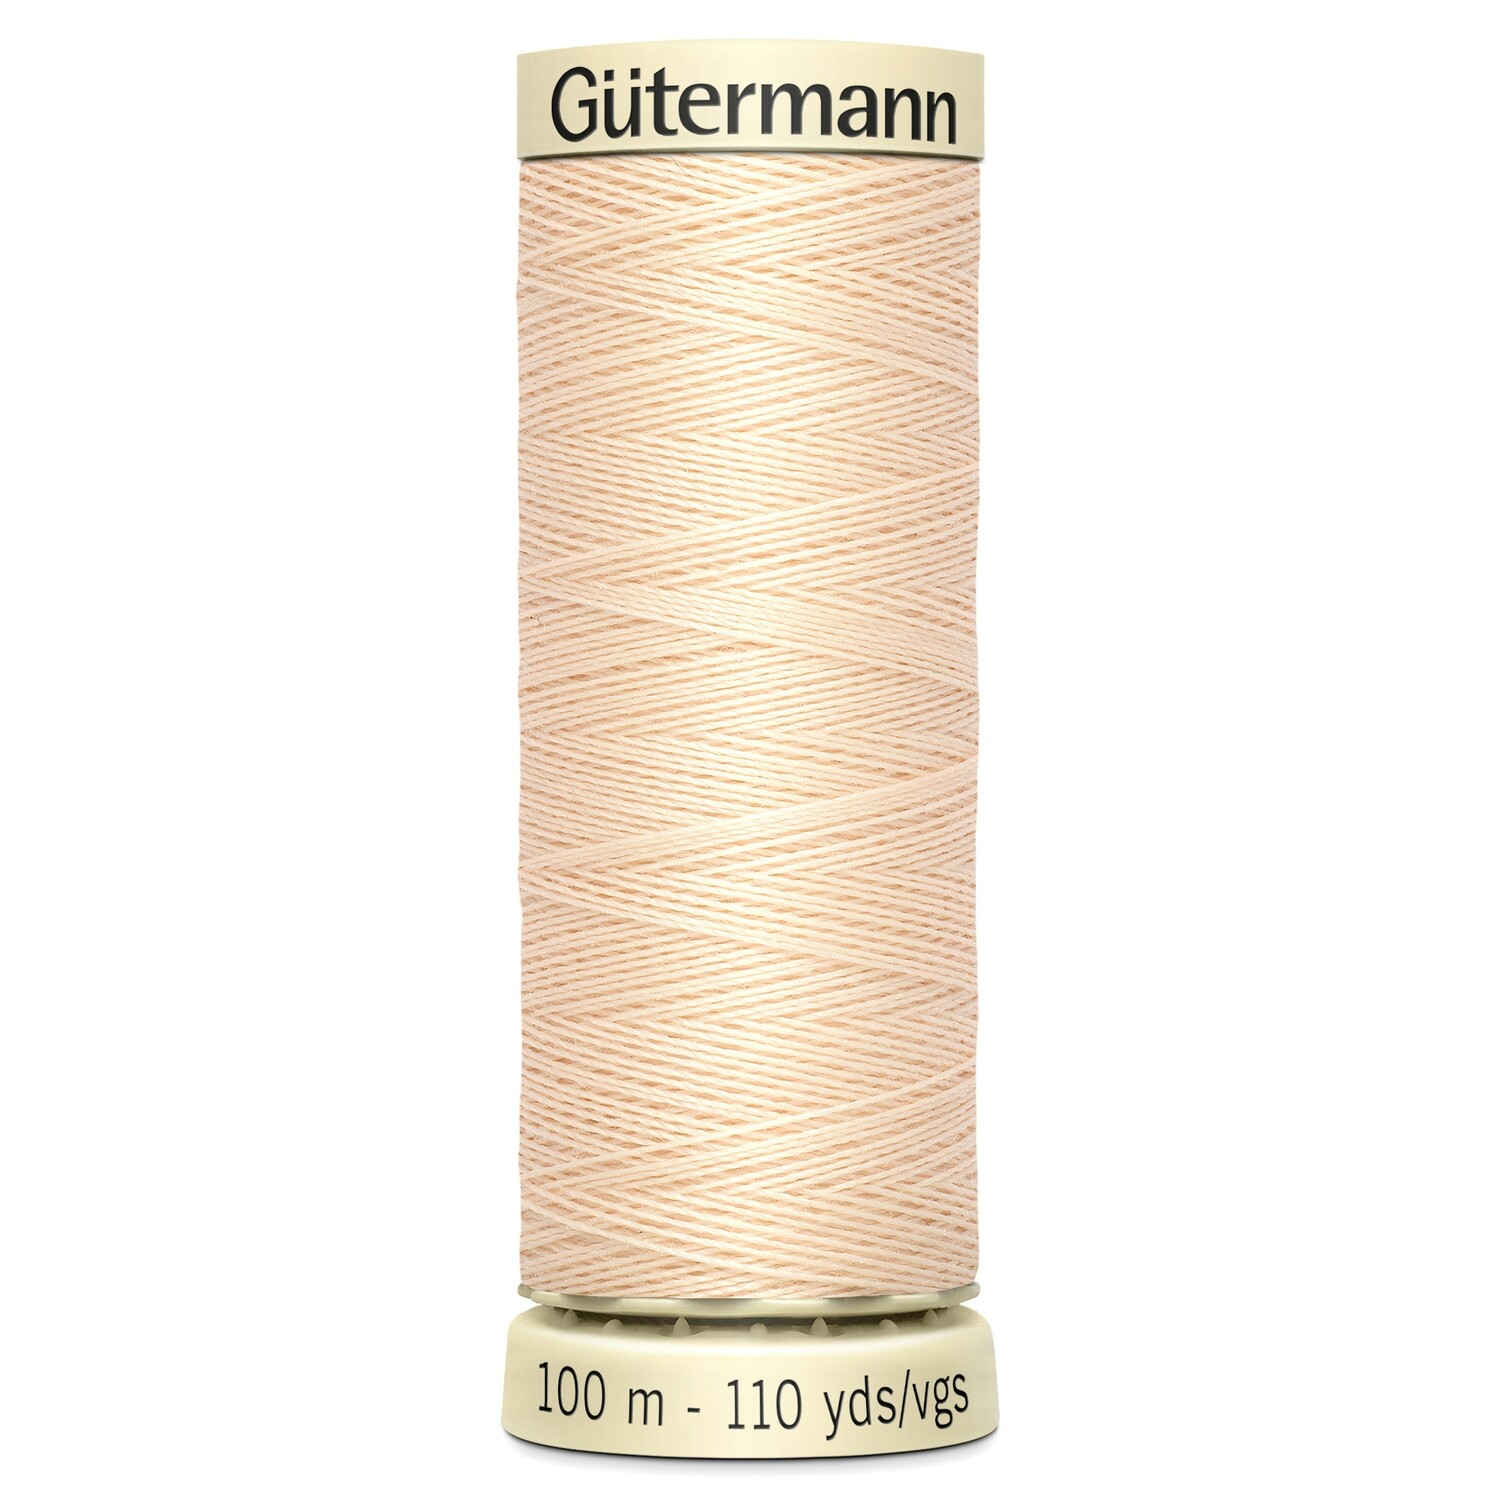 Gutermann Sew-All thread 5